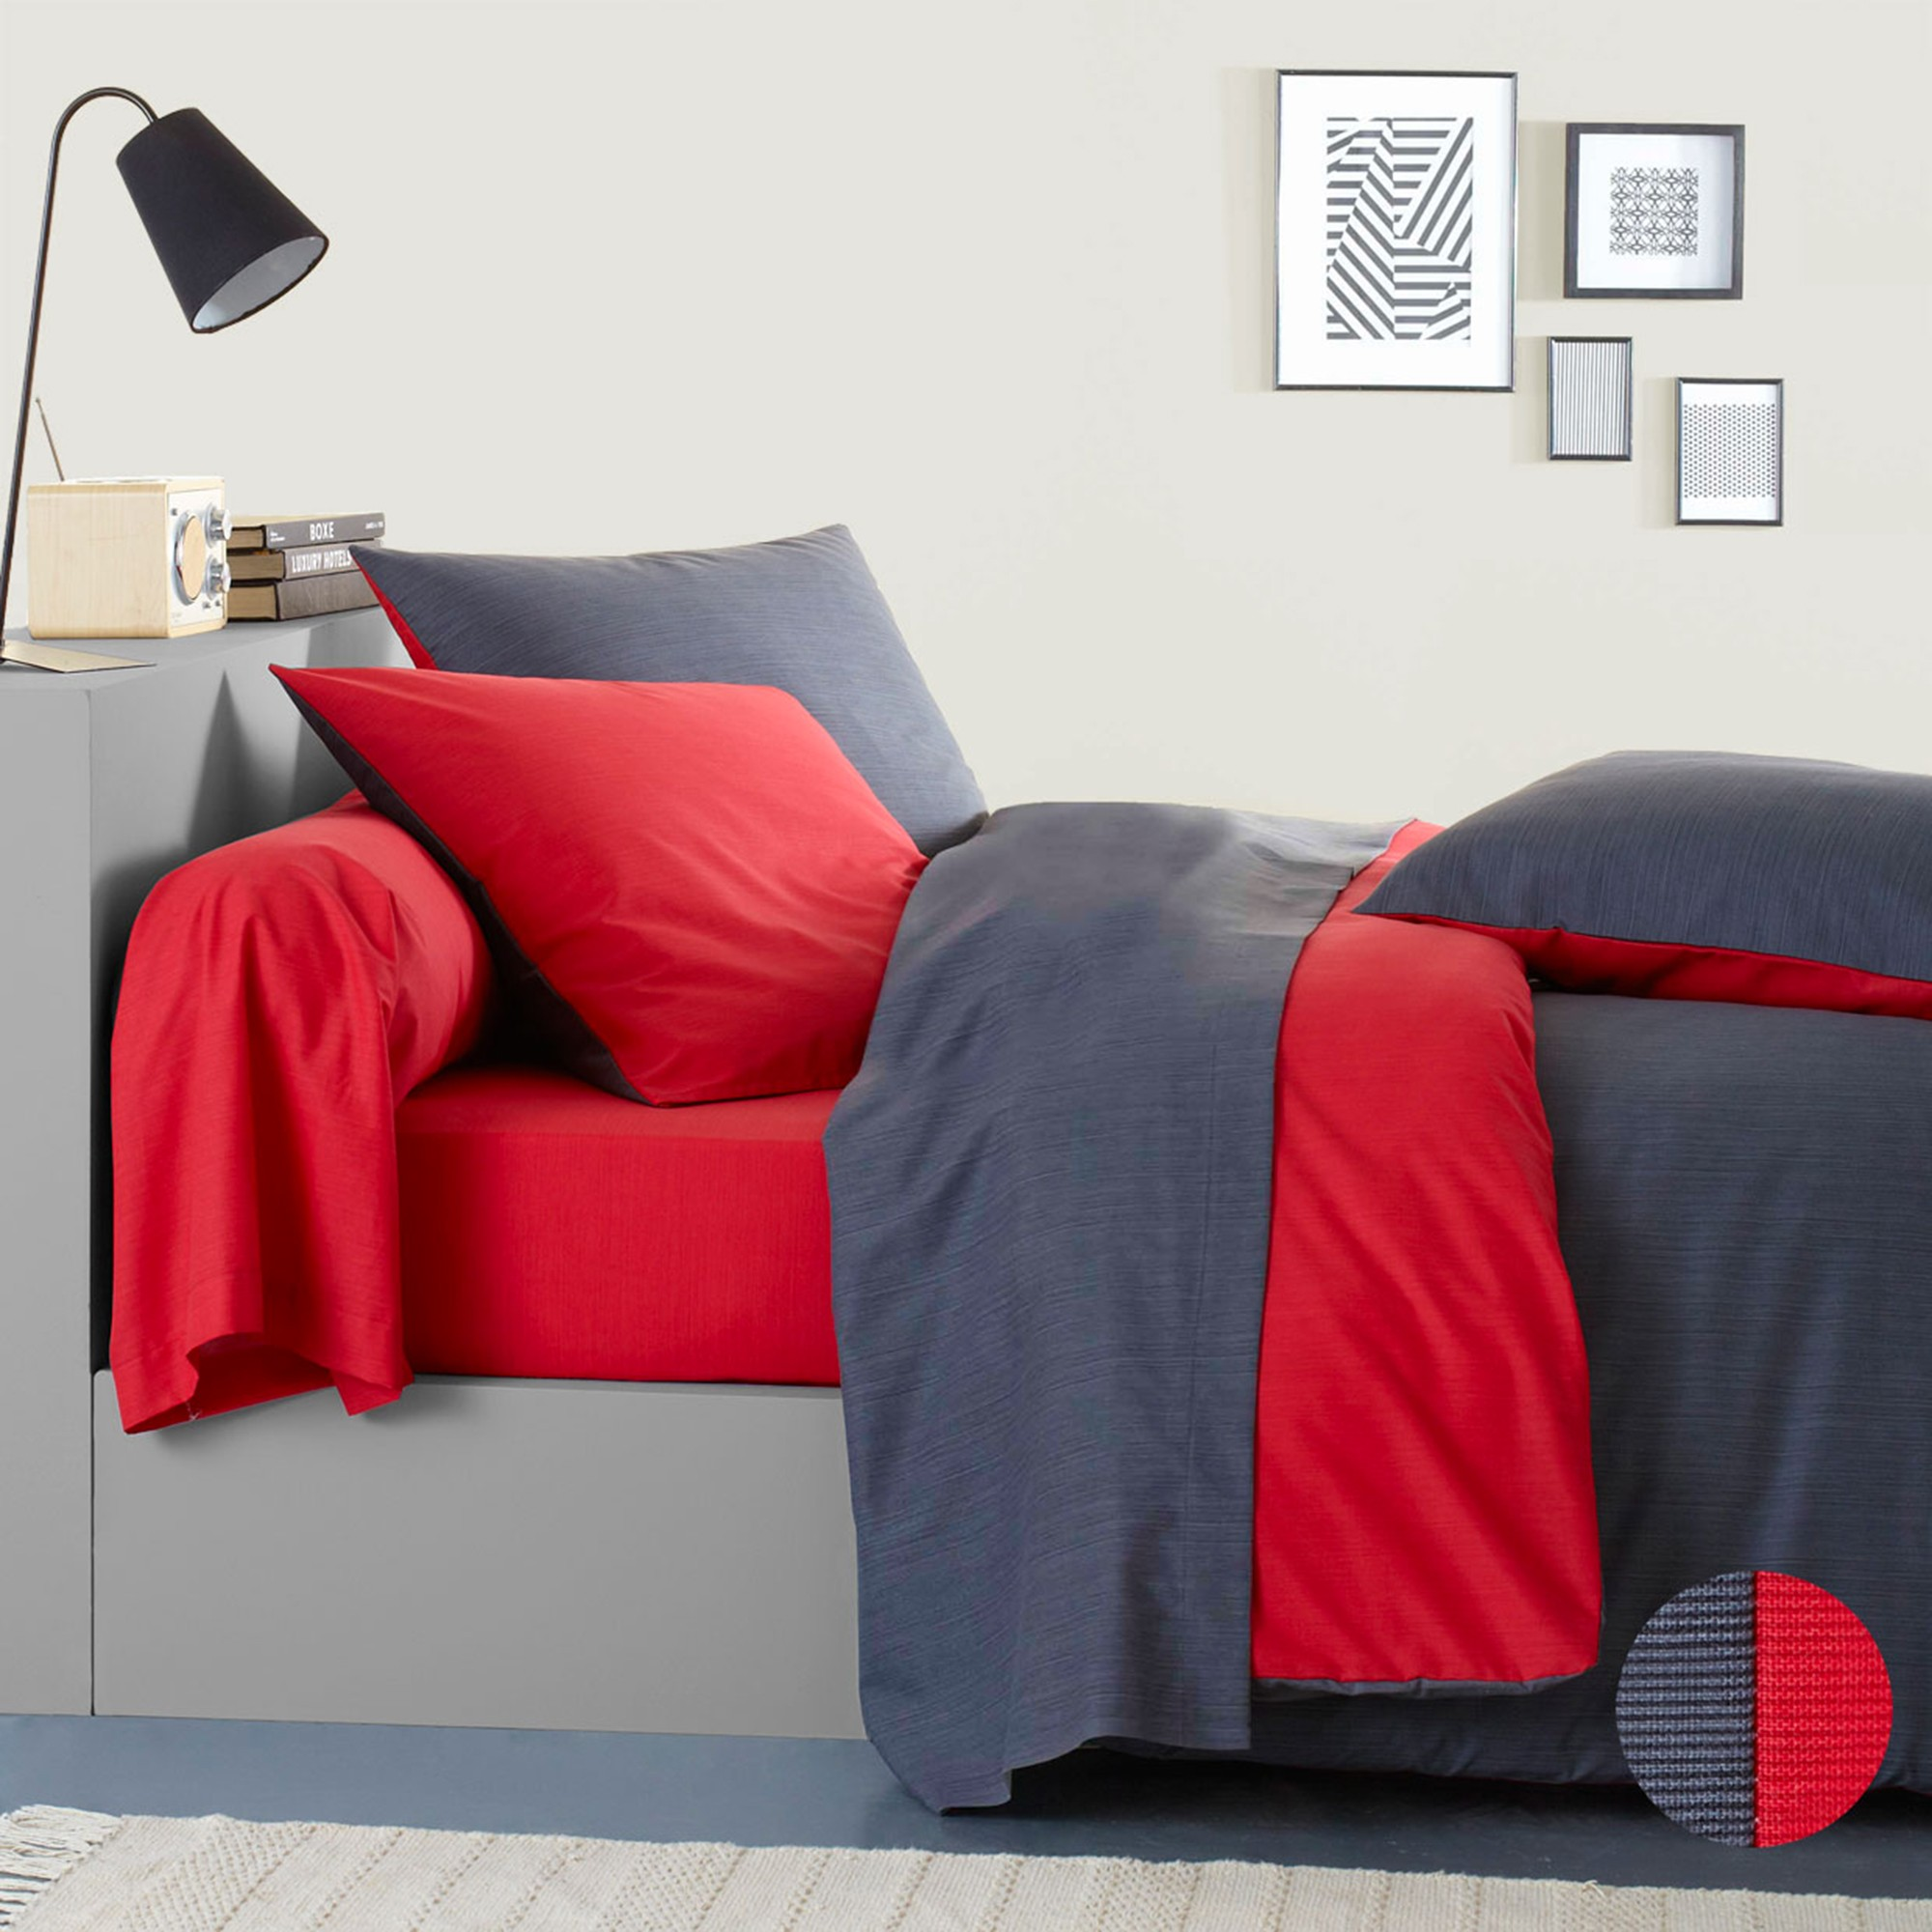 linge de lit bloc nordic coton blancheporte. Black Bedroom Furniture Sets. Home Design Ideas